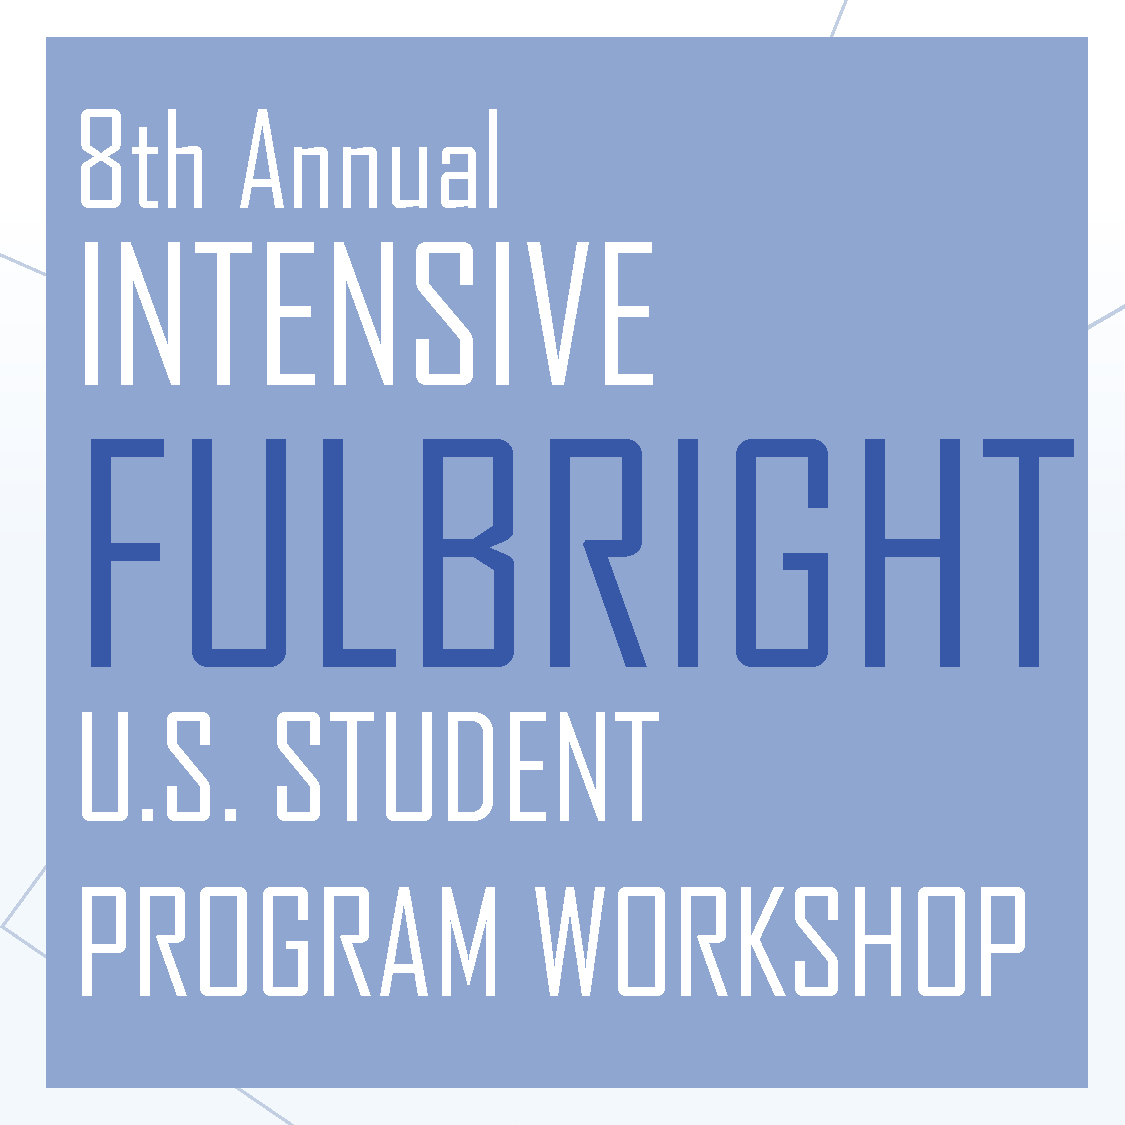 8th Annual Intensive Fulbright Workshop January 31